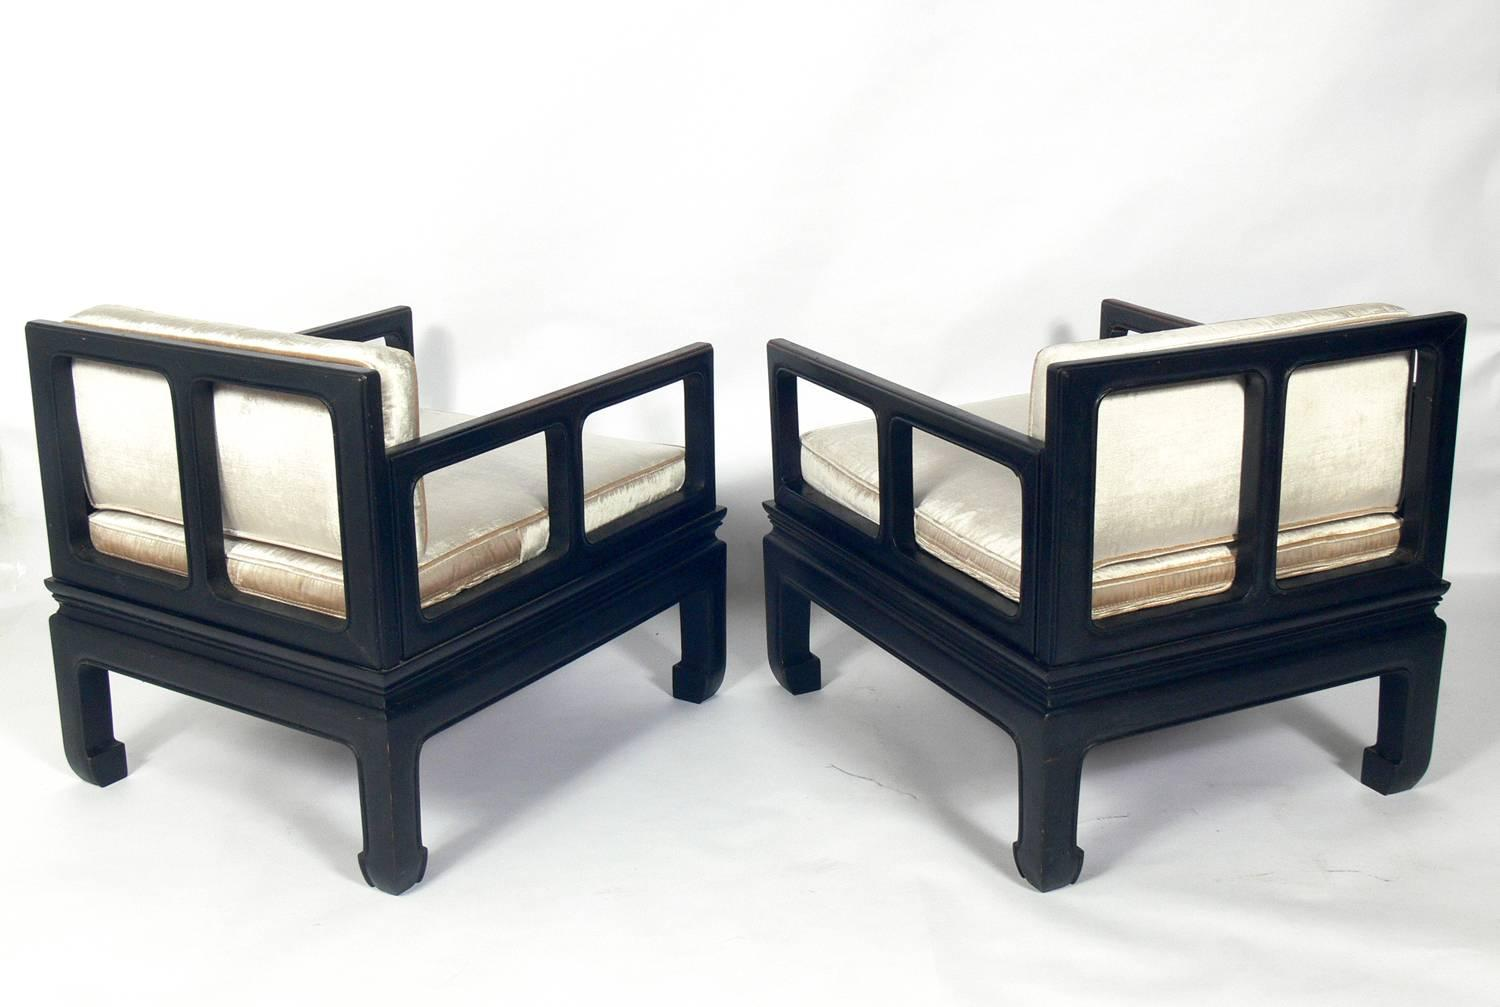 Low Slung Asian Style Lounge Chairs For Sale At 1stdibs